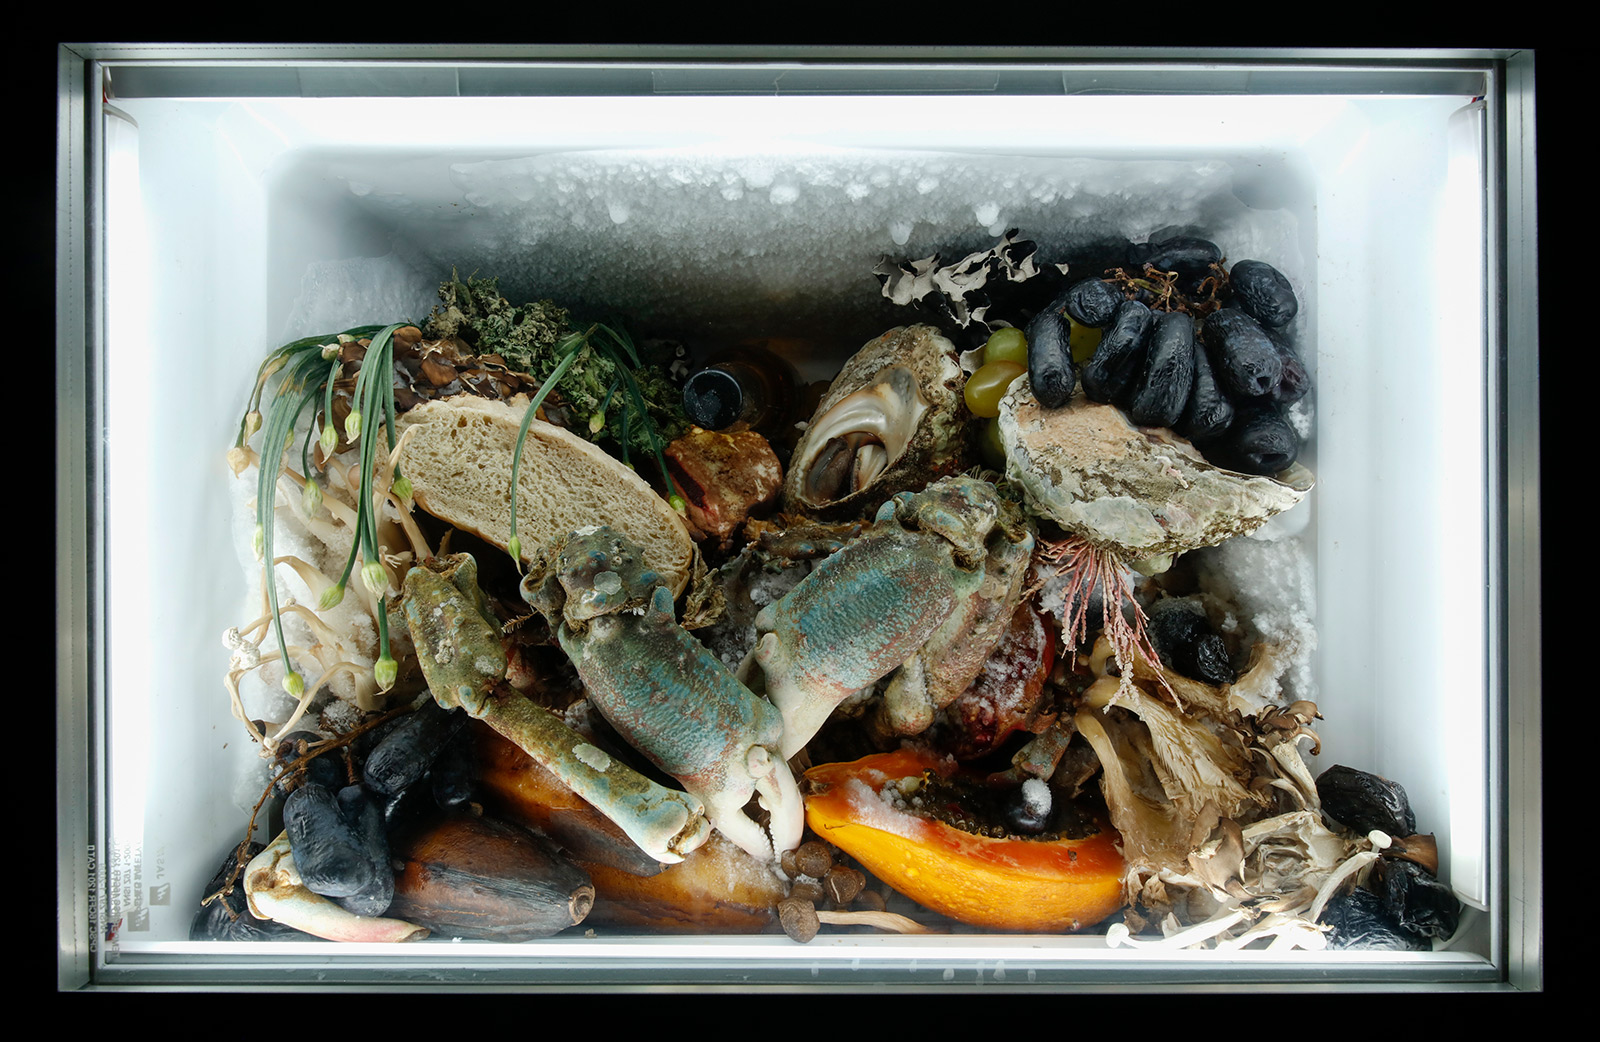 A container of crab and/or lobster claws, seashells, seaweed, etc.